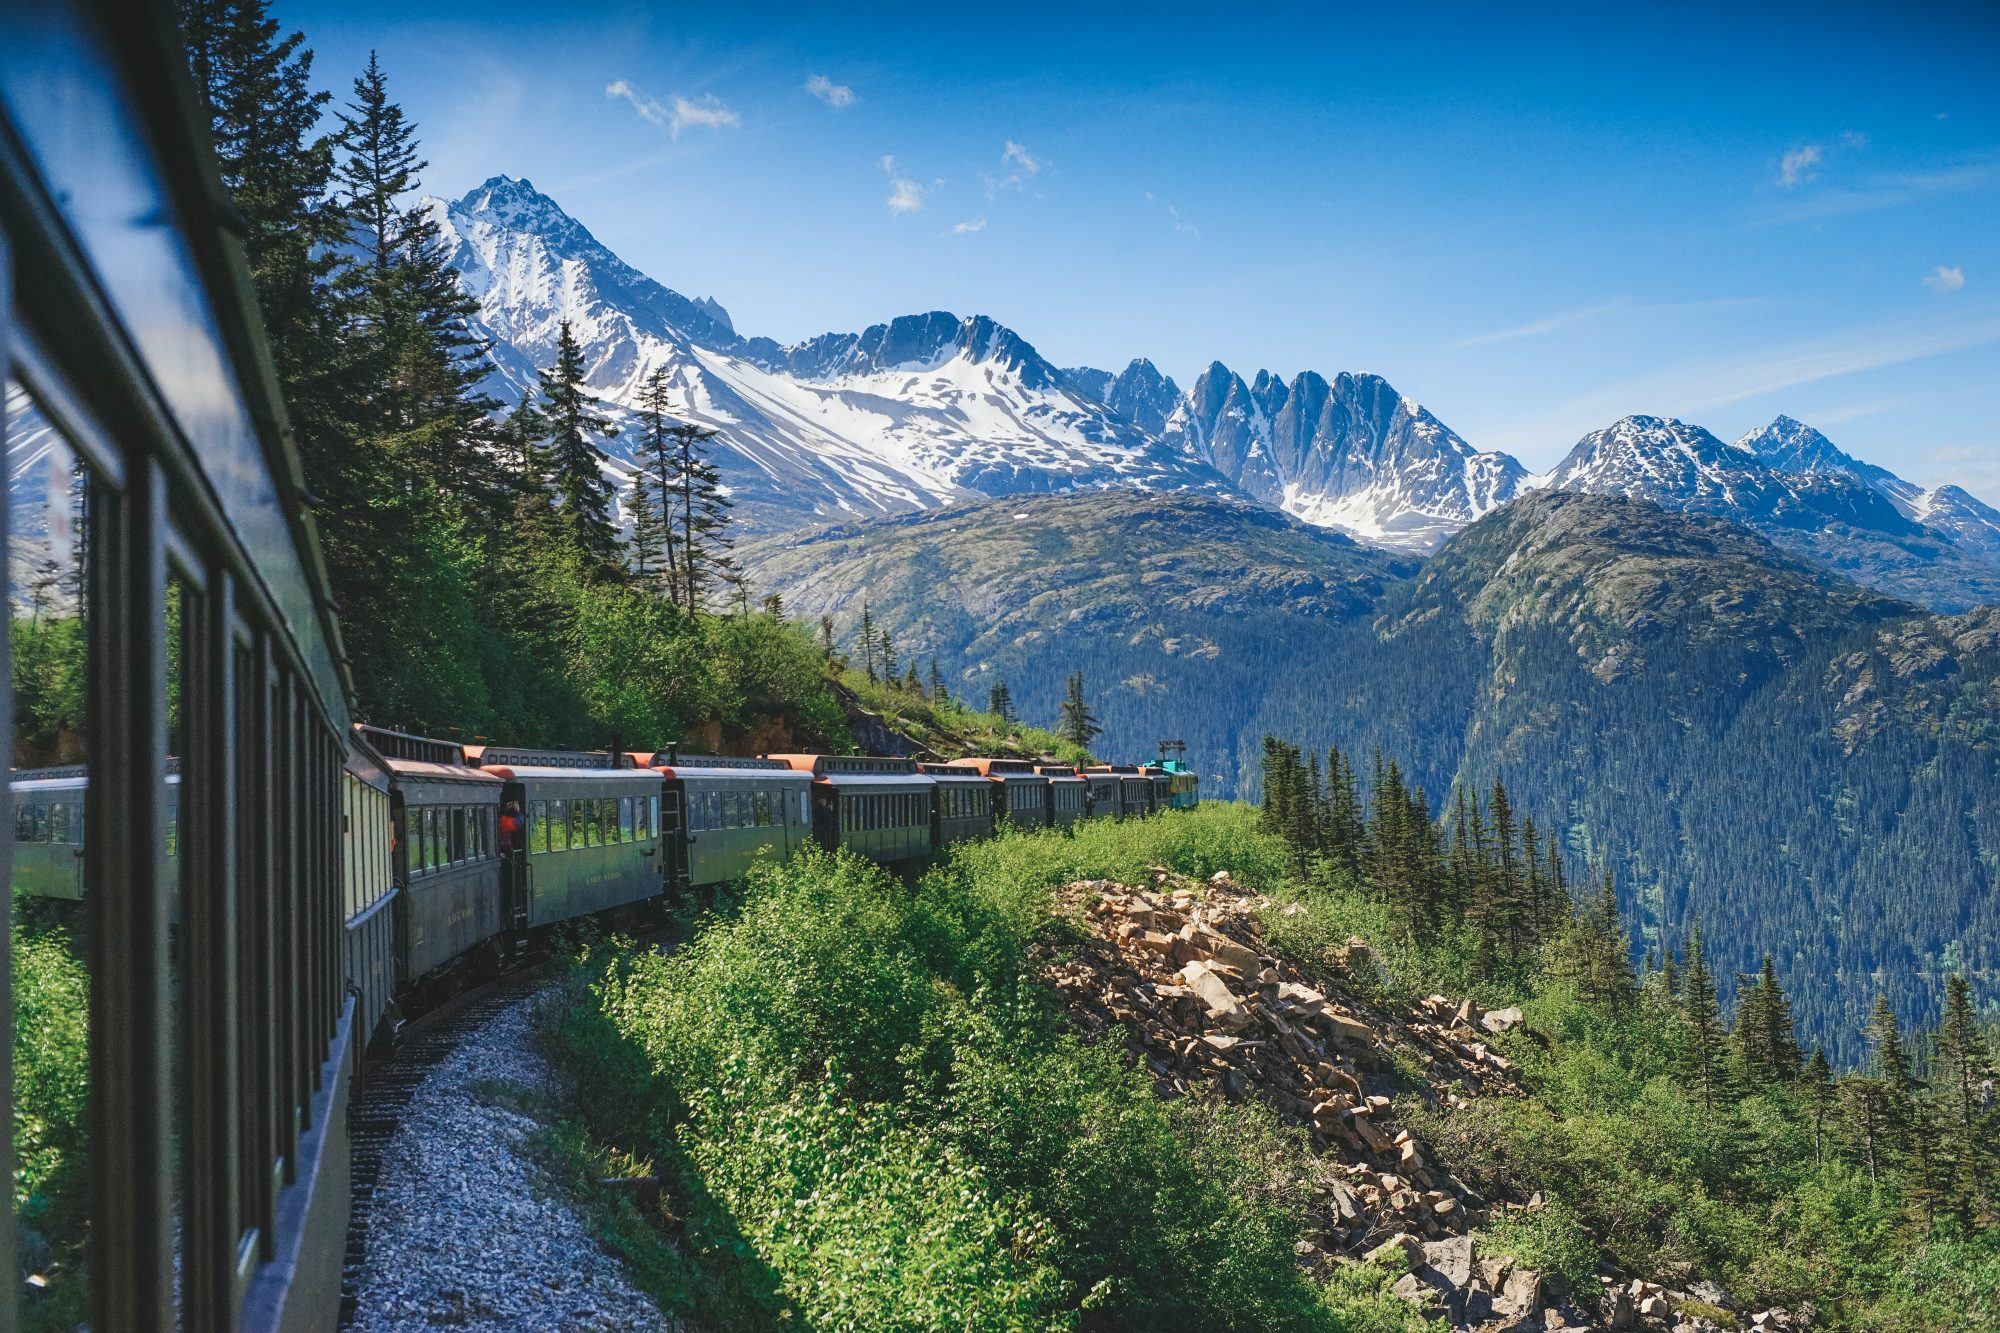 Attention Train Lovers: Long, Scenic Routes Are Becoming a Major Travel Trend for the New Year